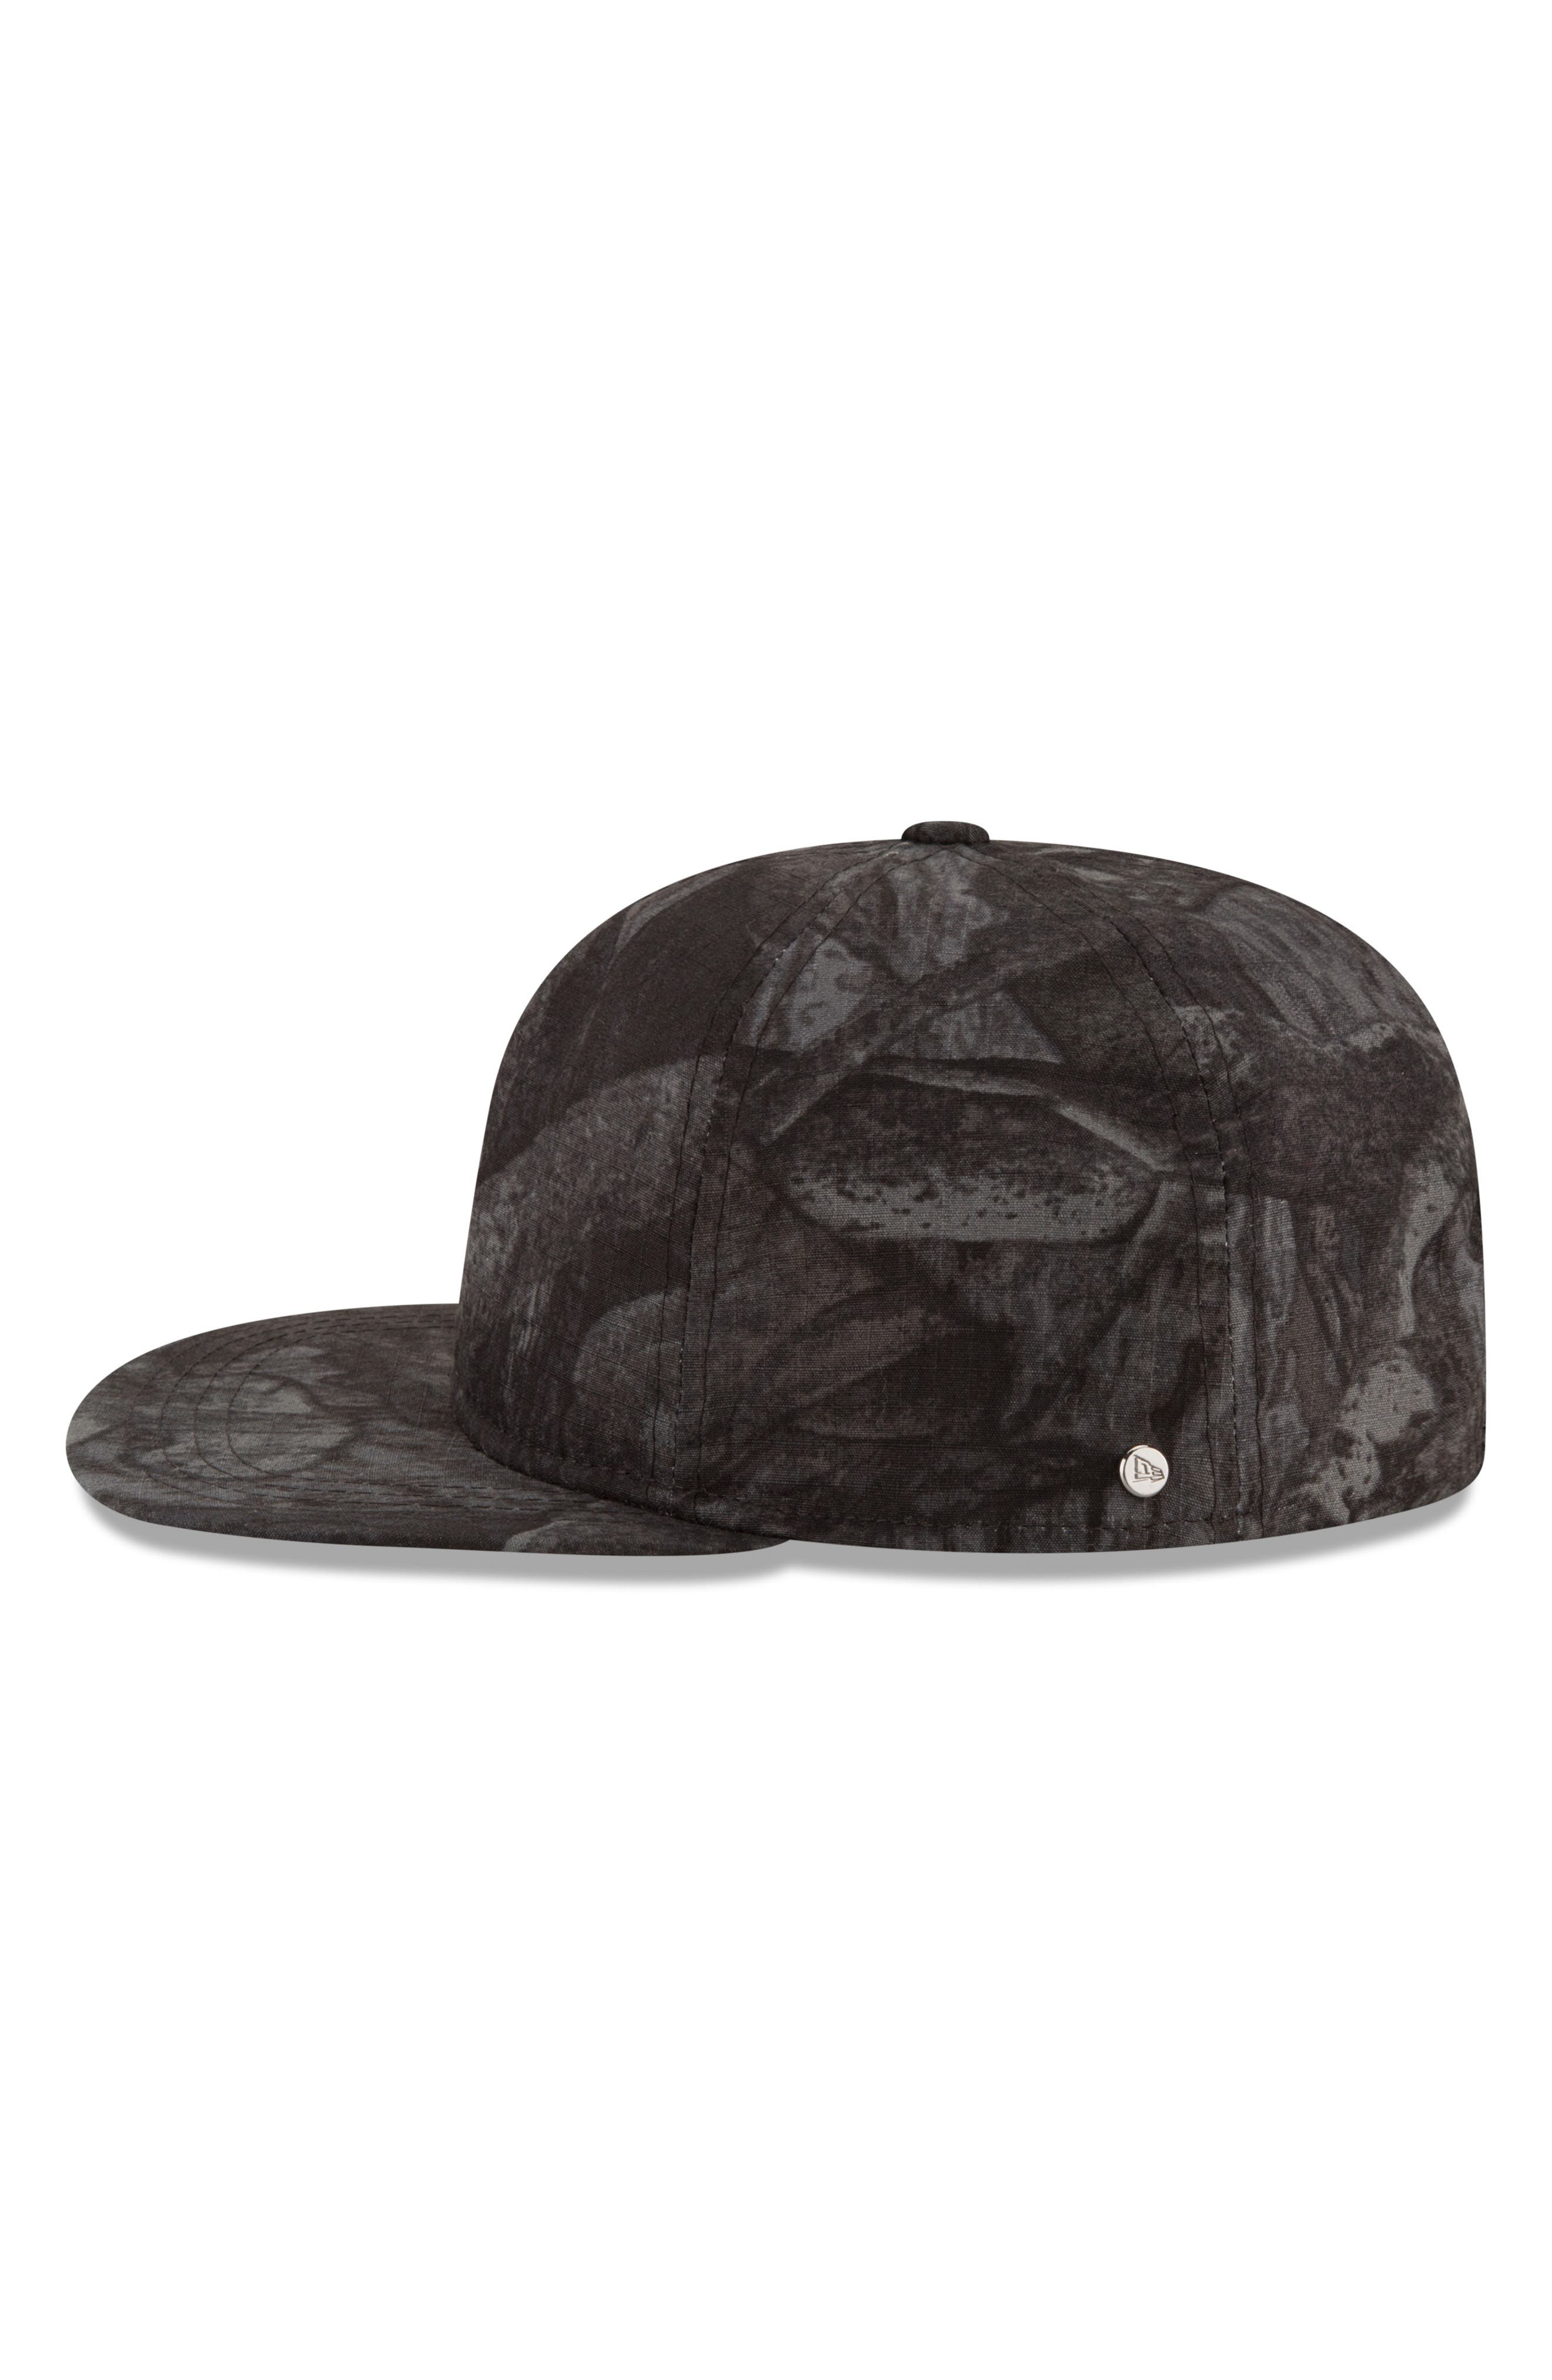 9Twenty Tonal Camo Flat Brim Hat,                             Alternate thumbnail 5, color,                             BLACK